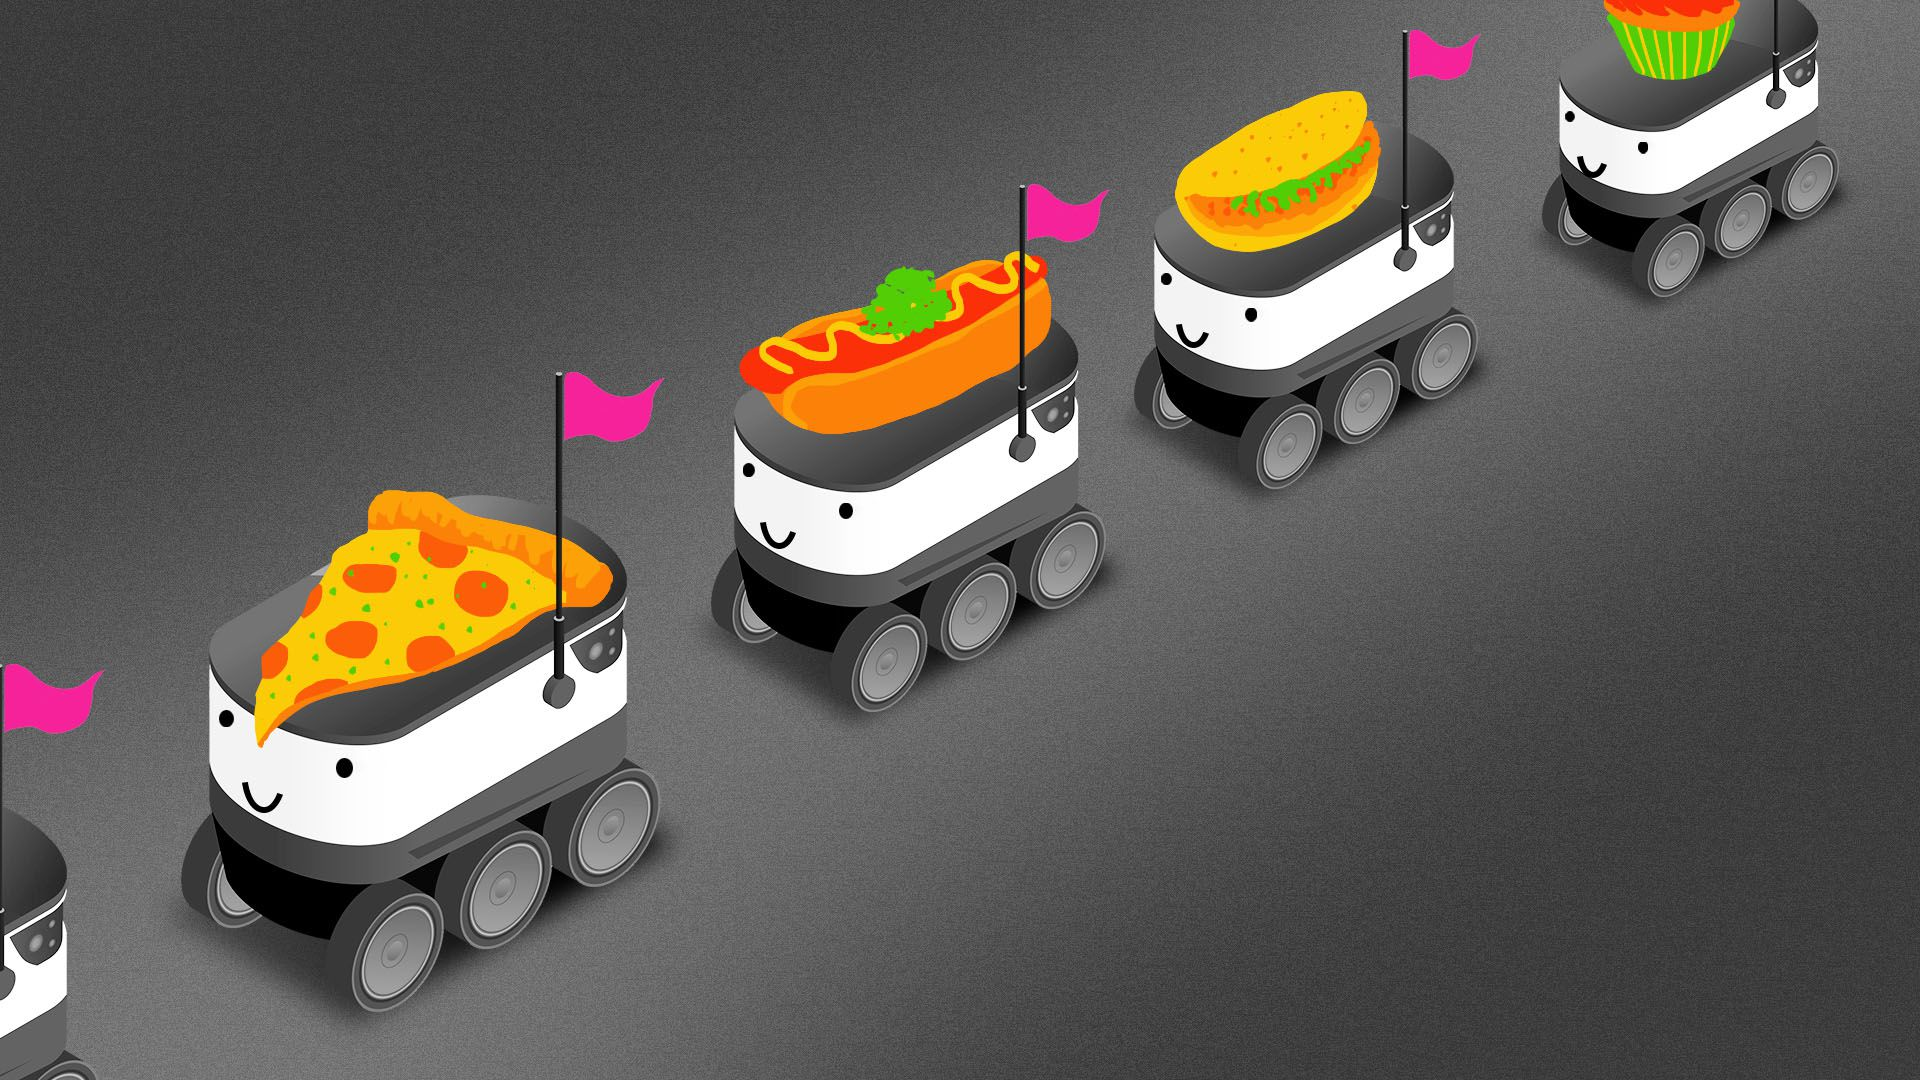 Illustration of a line of delivery robots with food items on their backs